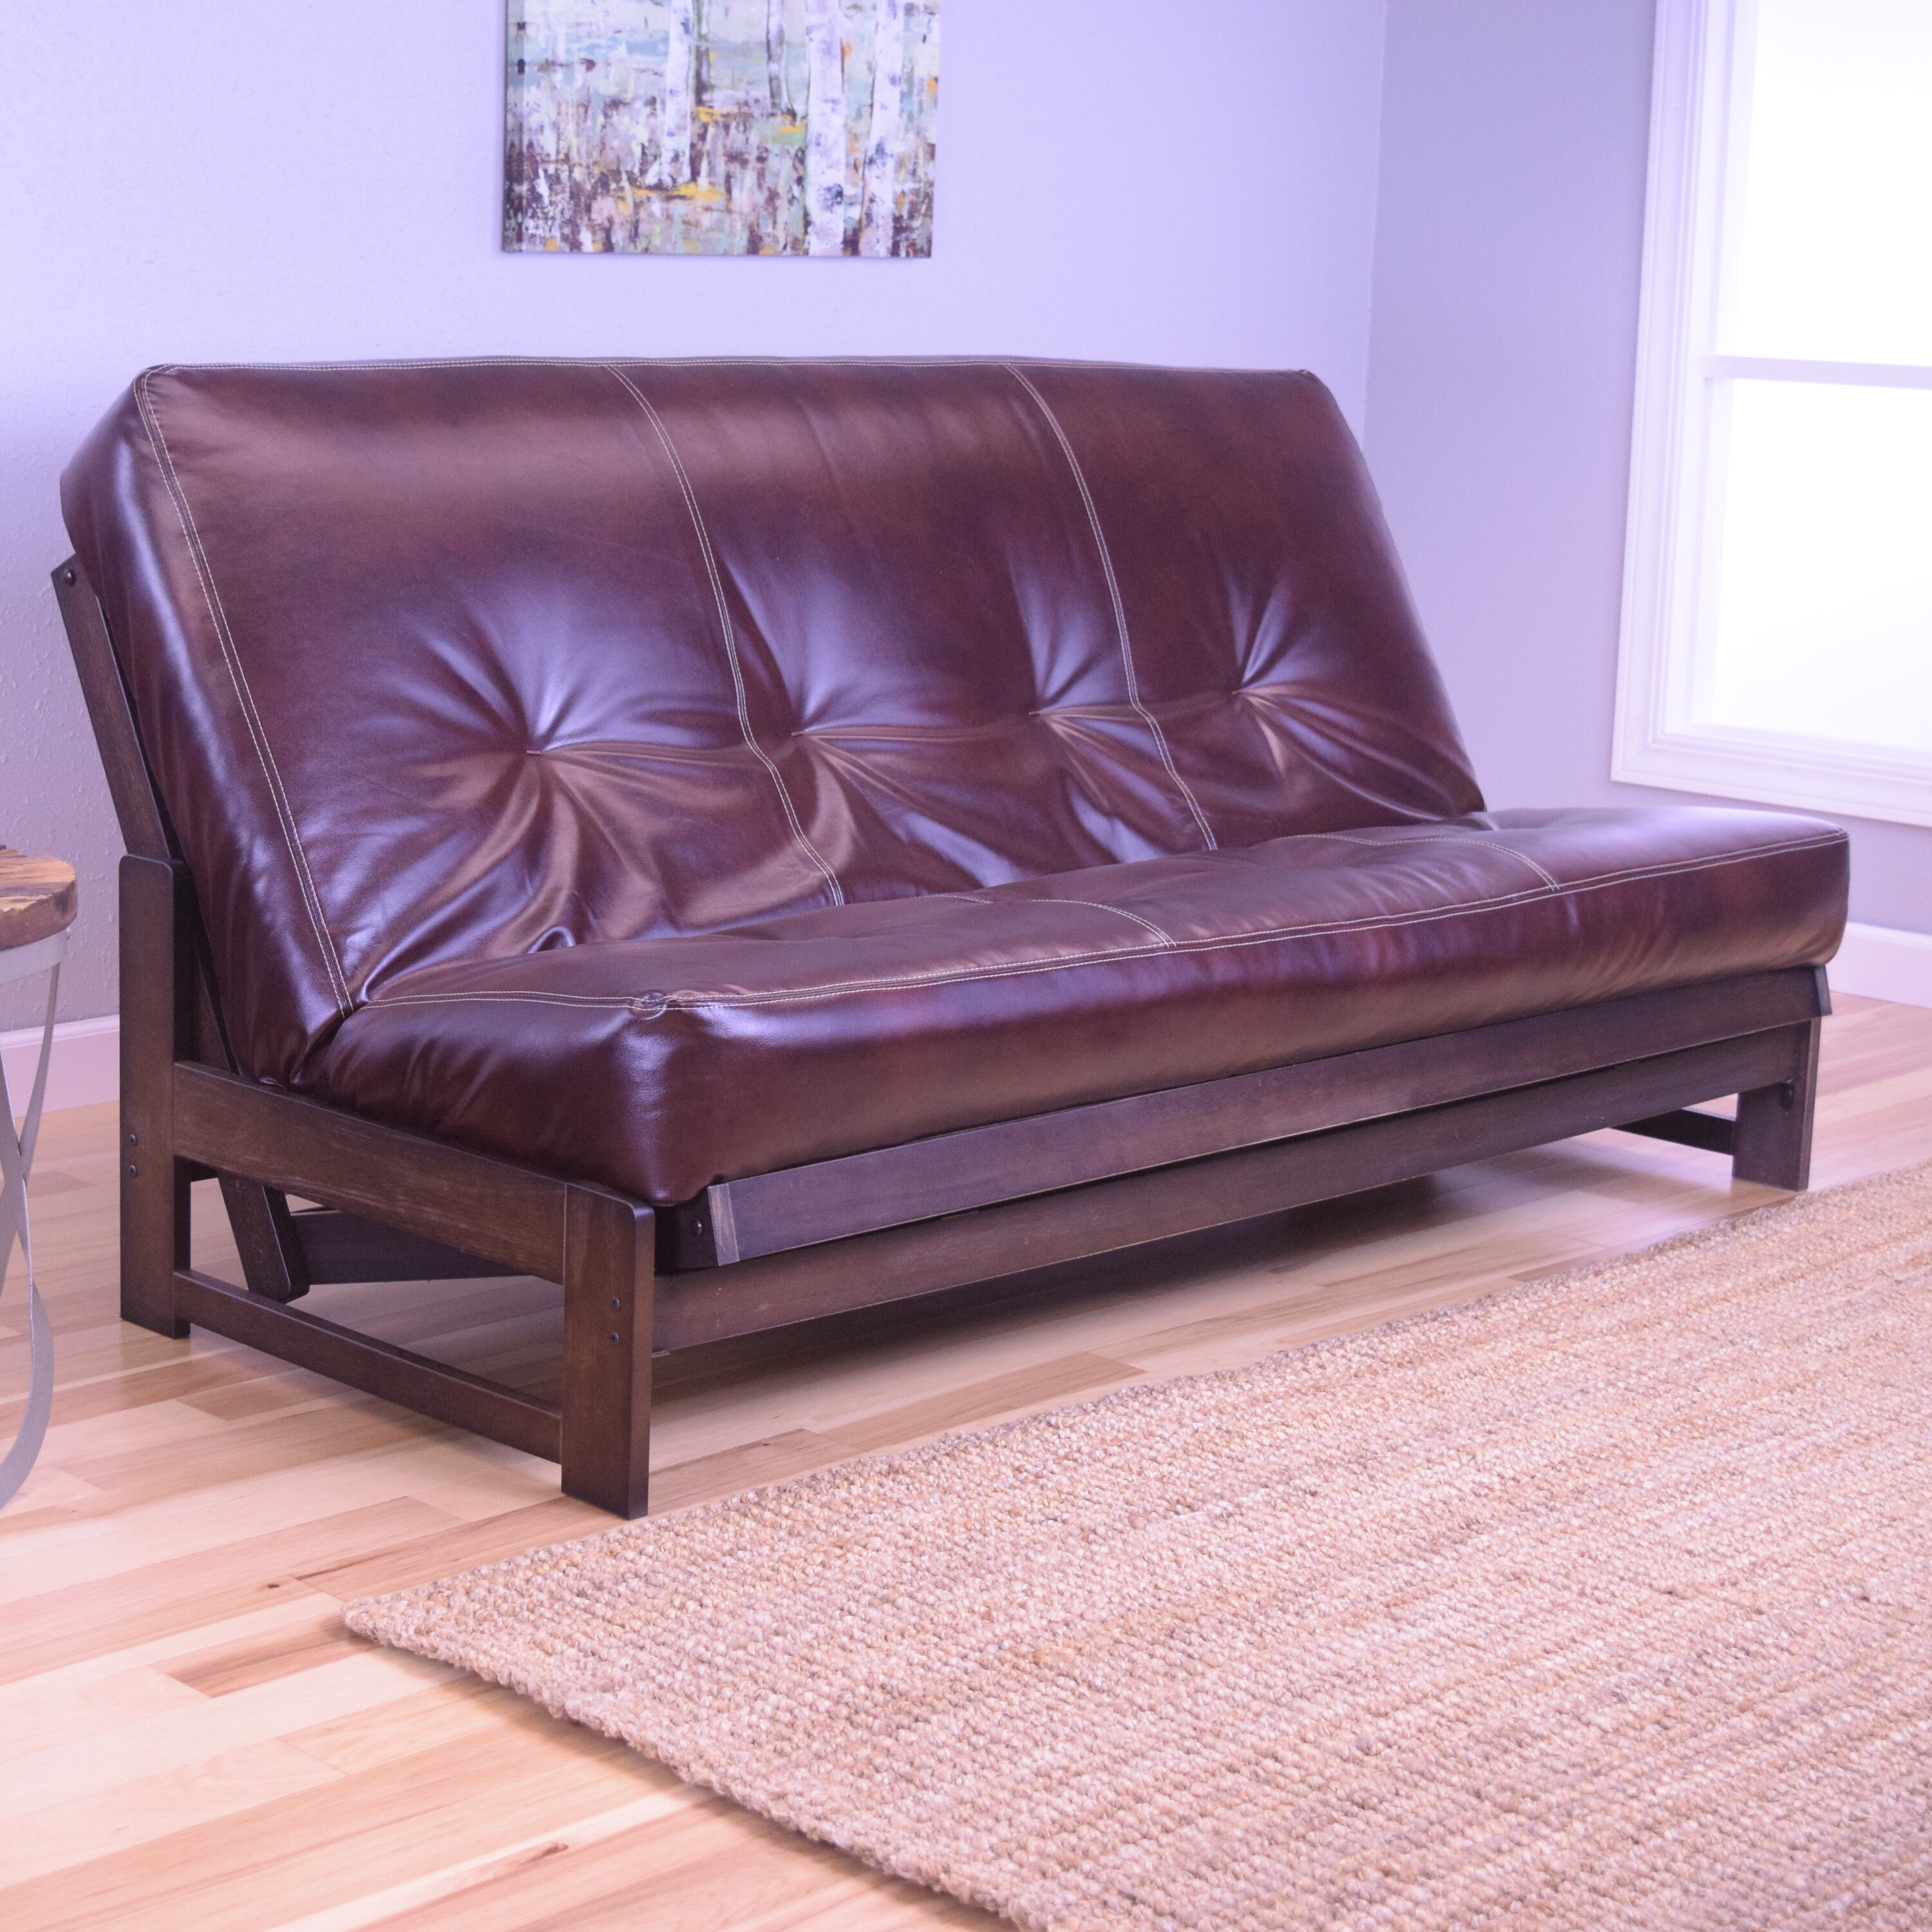 near futons store products and item coaster brown with futon ratchet dark bed sofa beds back number me